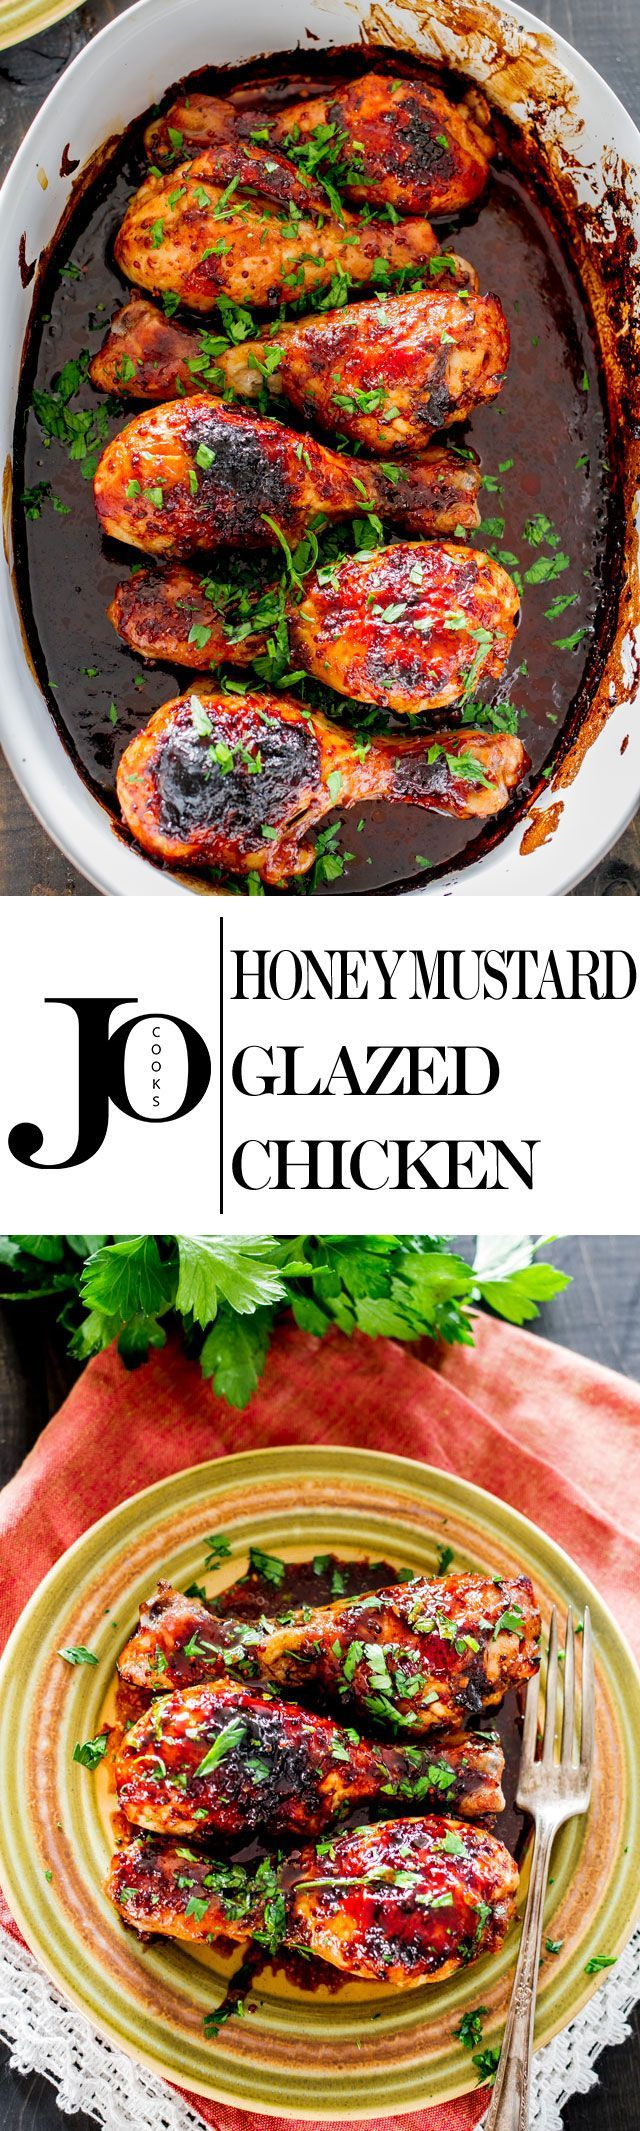 Honey Mustard Glazed Chicken – a simple recipe for chicken baked to perfection with a honey, mustard and soy sauce glaze.